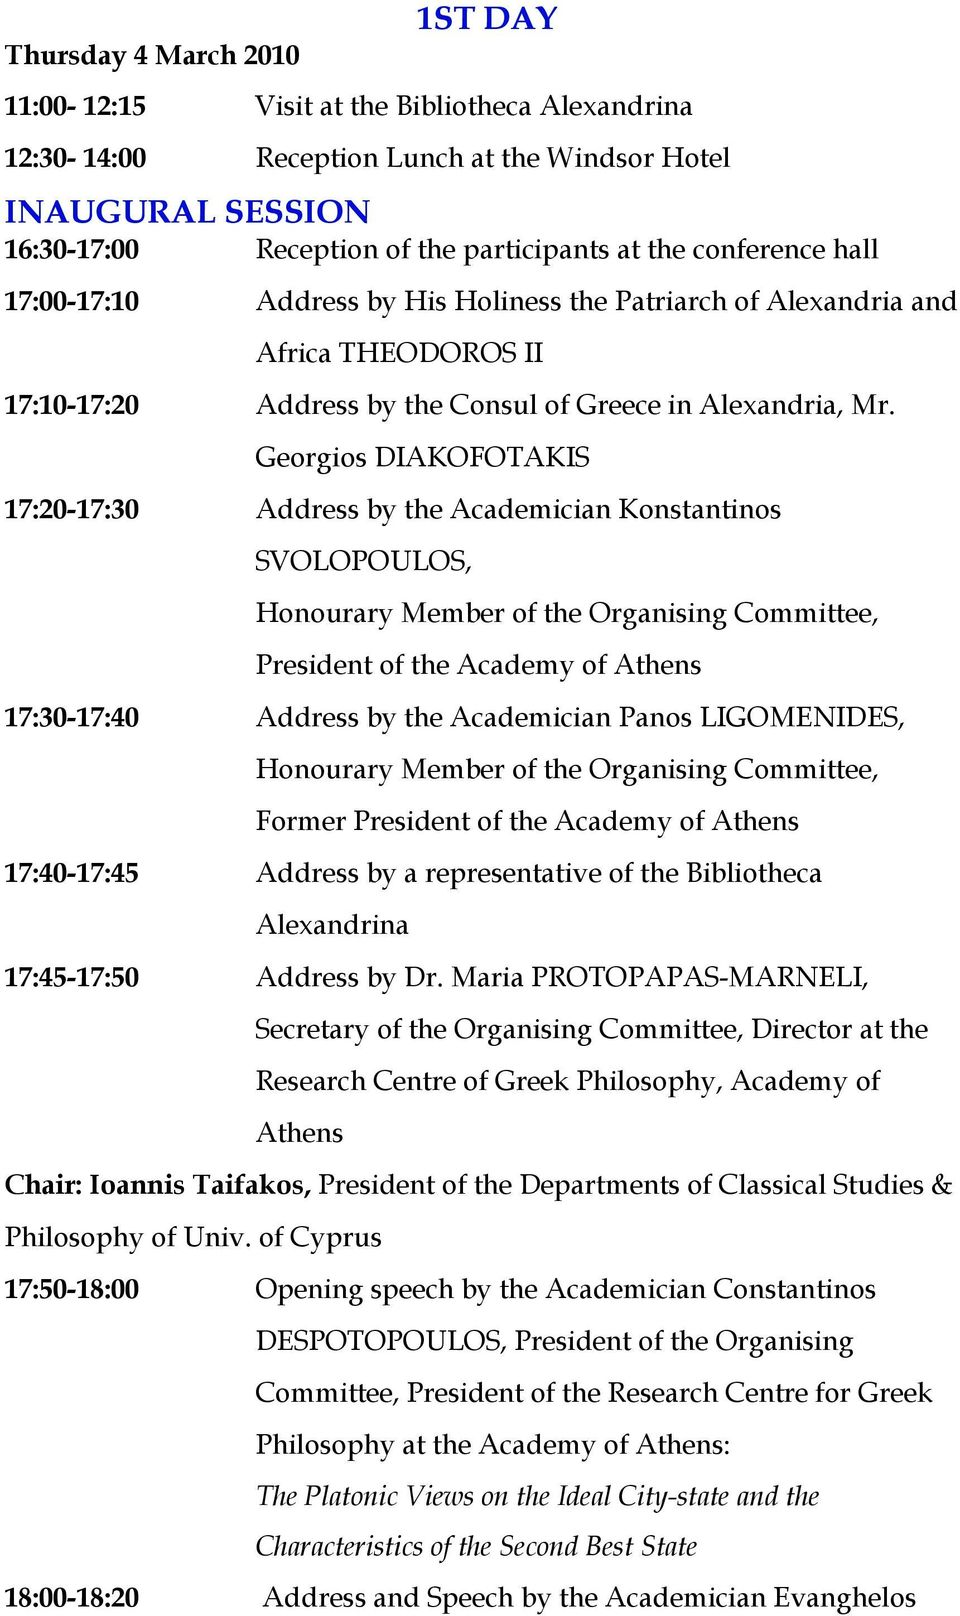 Georgios DIAKOFOTAKIS 17:20-17:30 Address by the Academician Konstantinos SVOLOPOULOS, Honourary Member of the Organising Committee, President of the Academy of Athens 17:30-17:40 Address by the